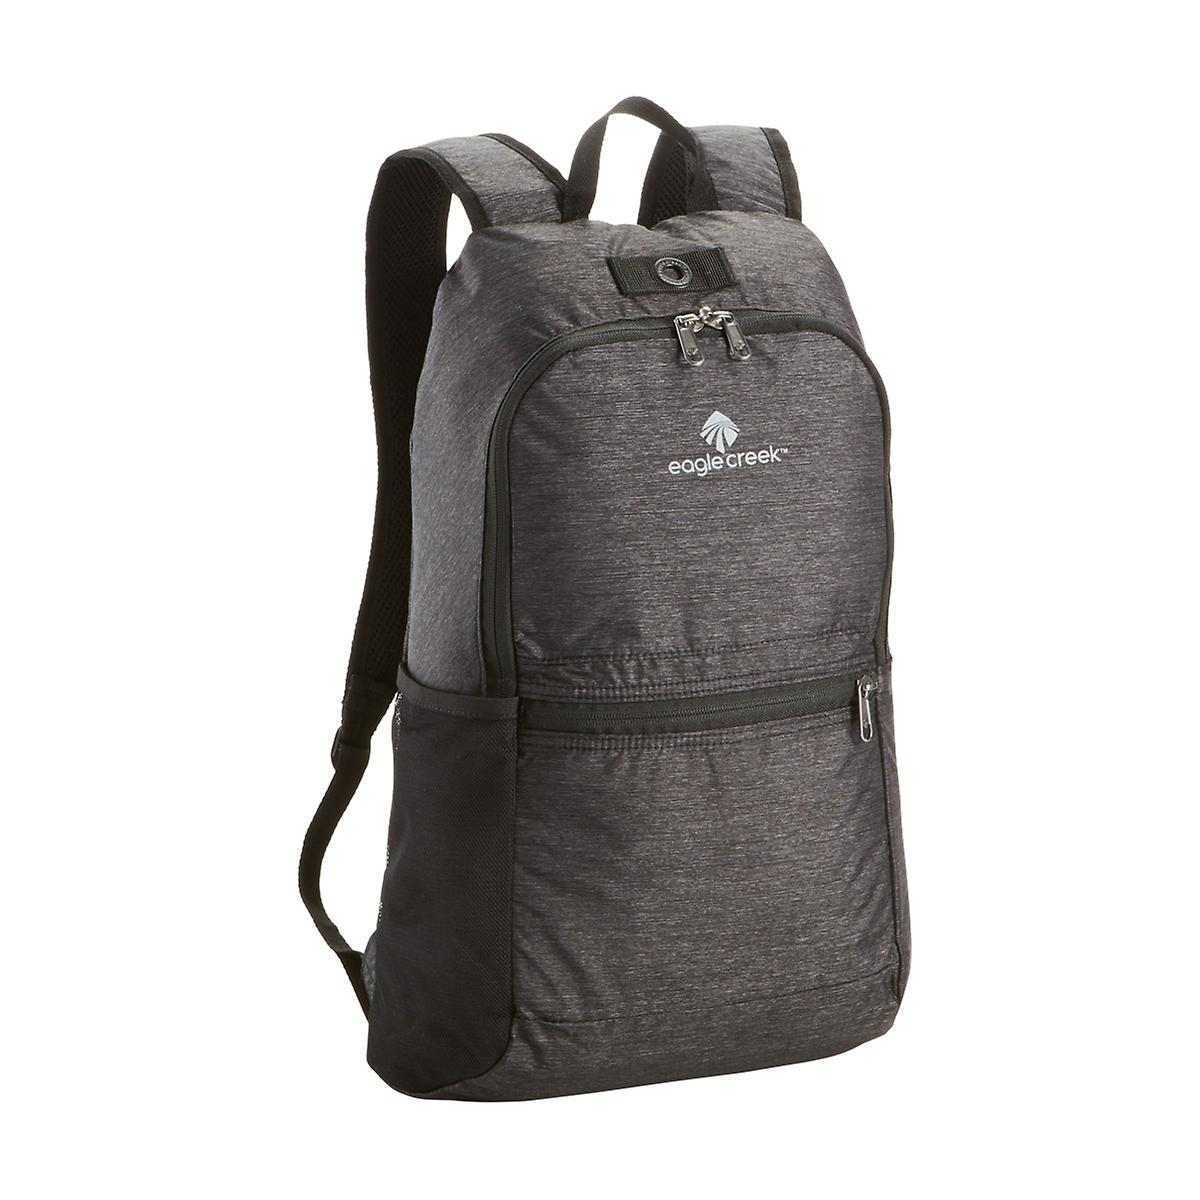 Eagle Creek Heathered Black Packable Daypack